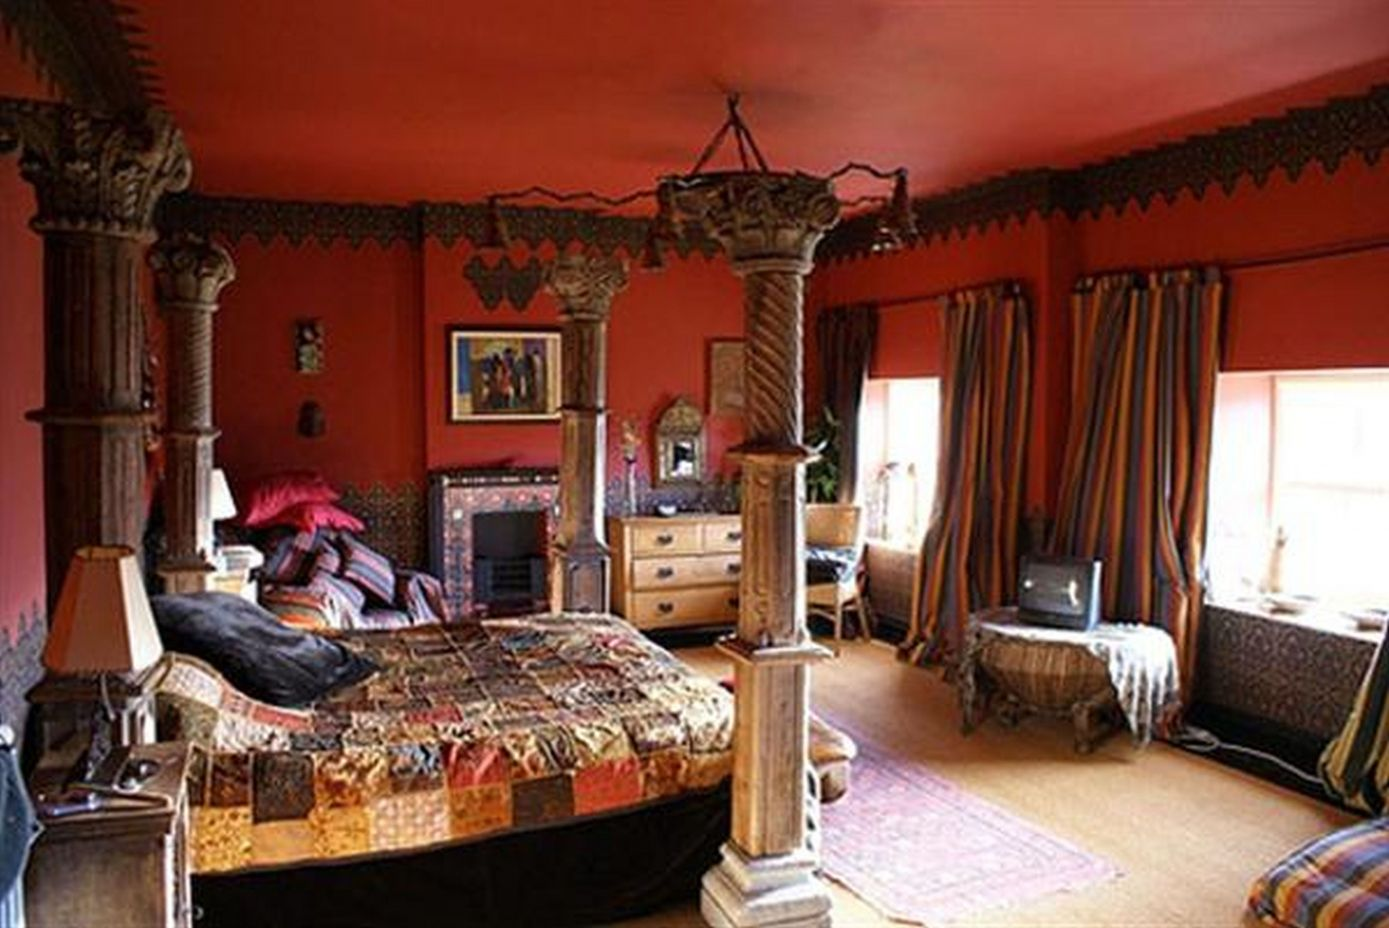 Superb Tagged Moroccan Style Bedroom Decorating Ideas Archives House With Picture  Of Elegant Moroccan Bedroom Decorating Ideas